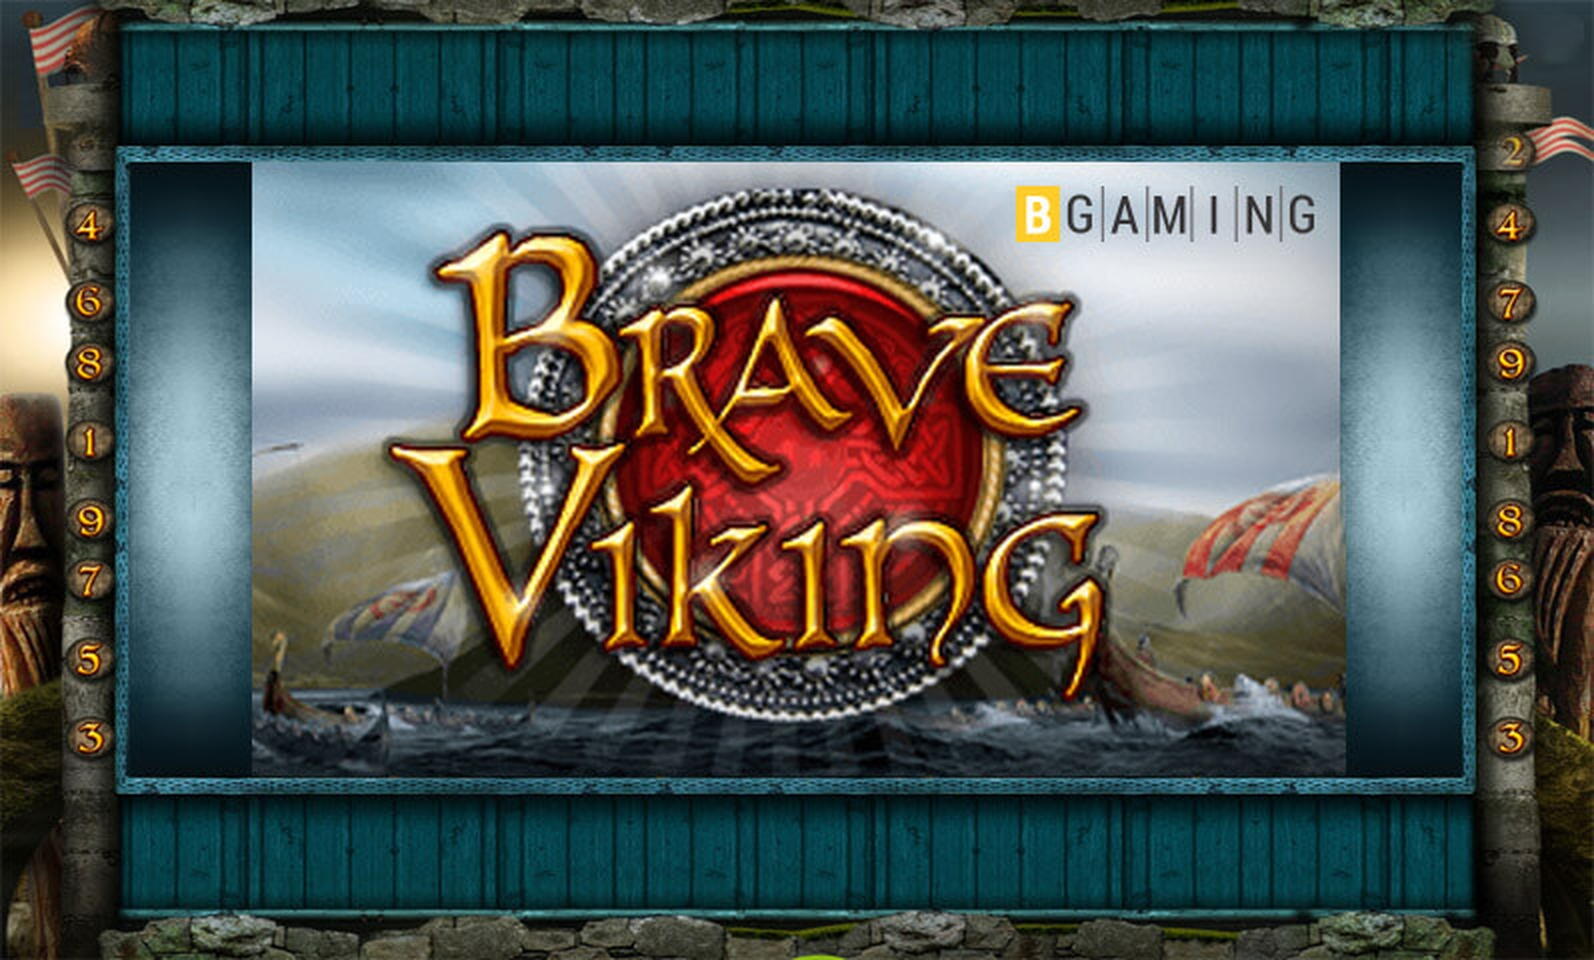 The Brave Viking Online Slot Demo Game by BGAMING